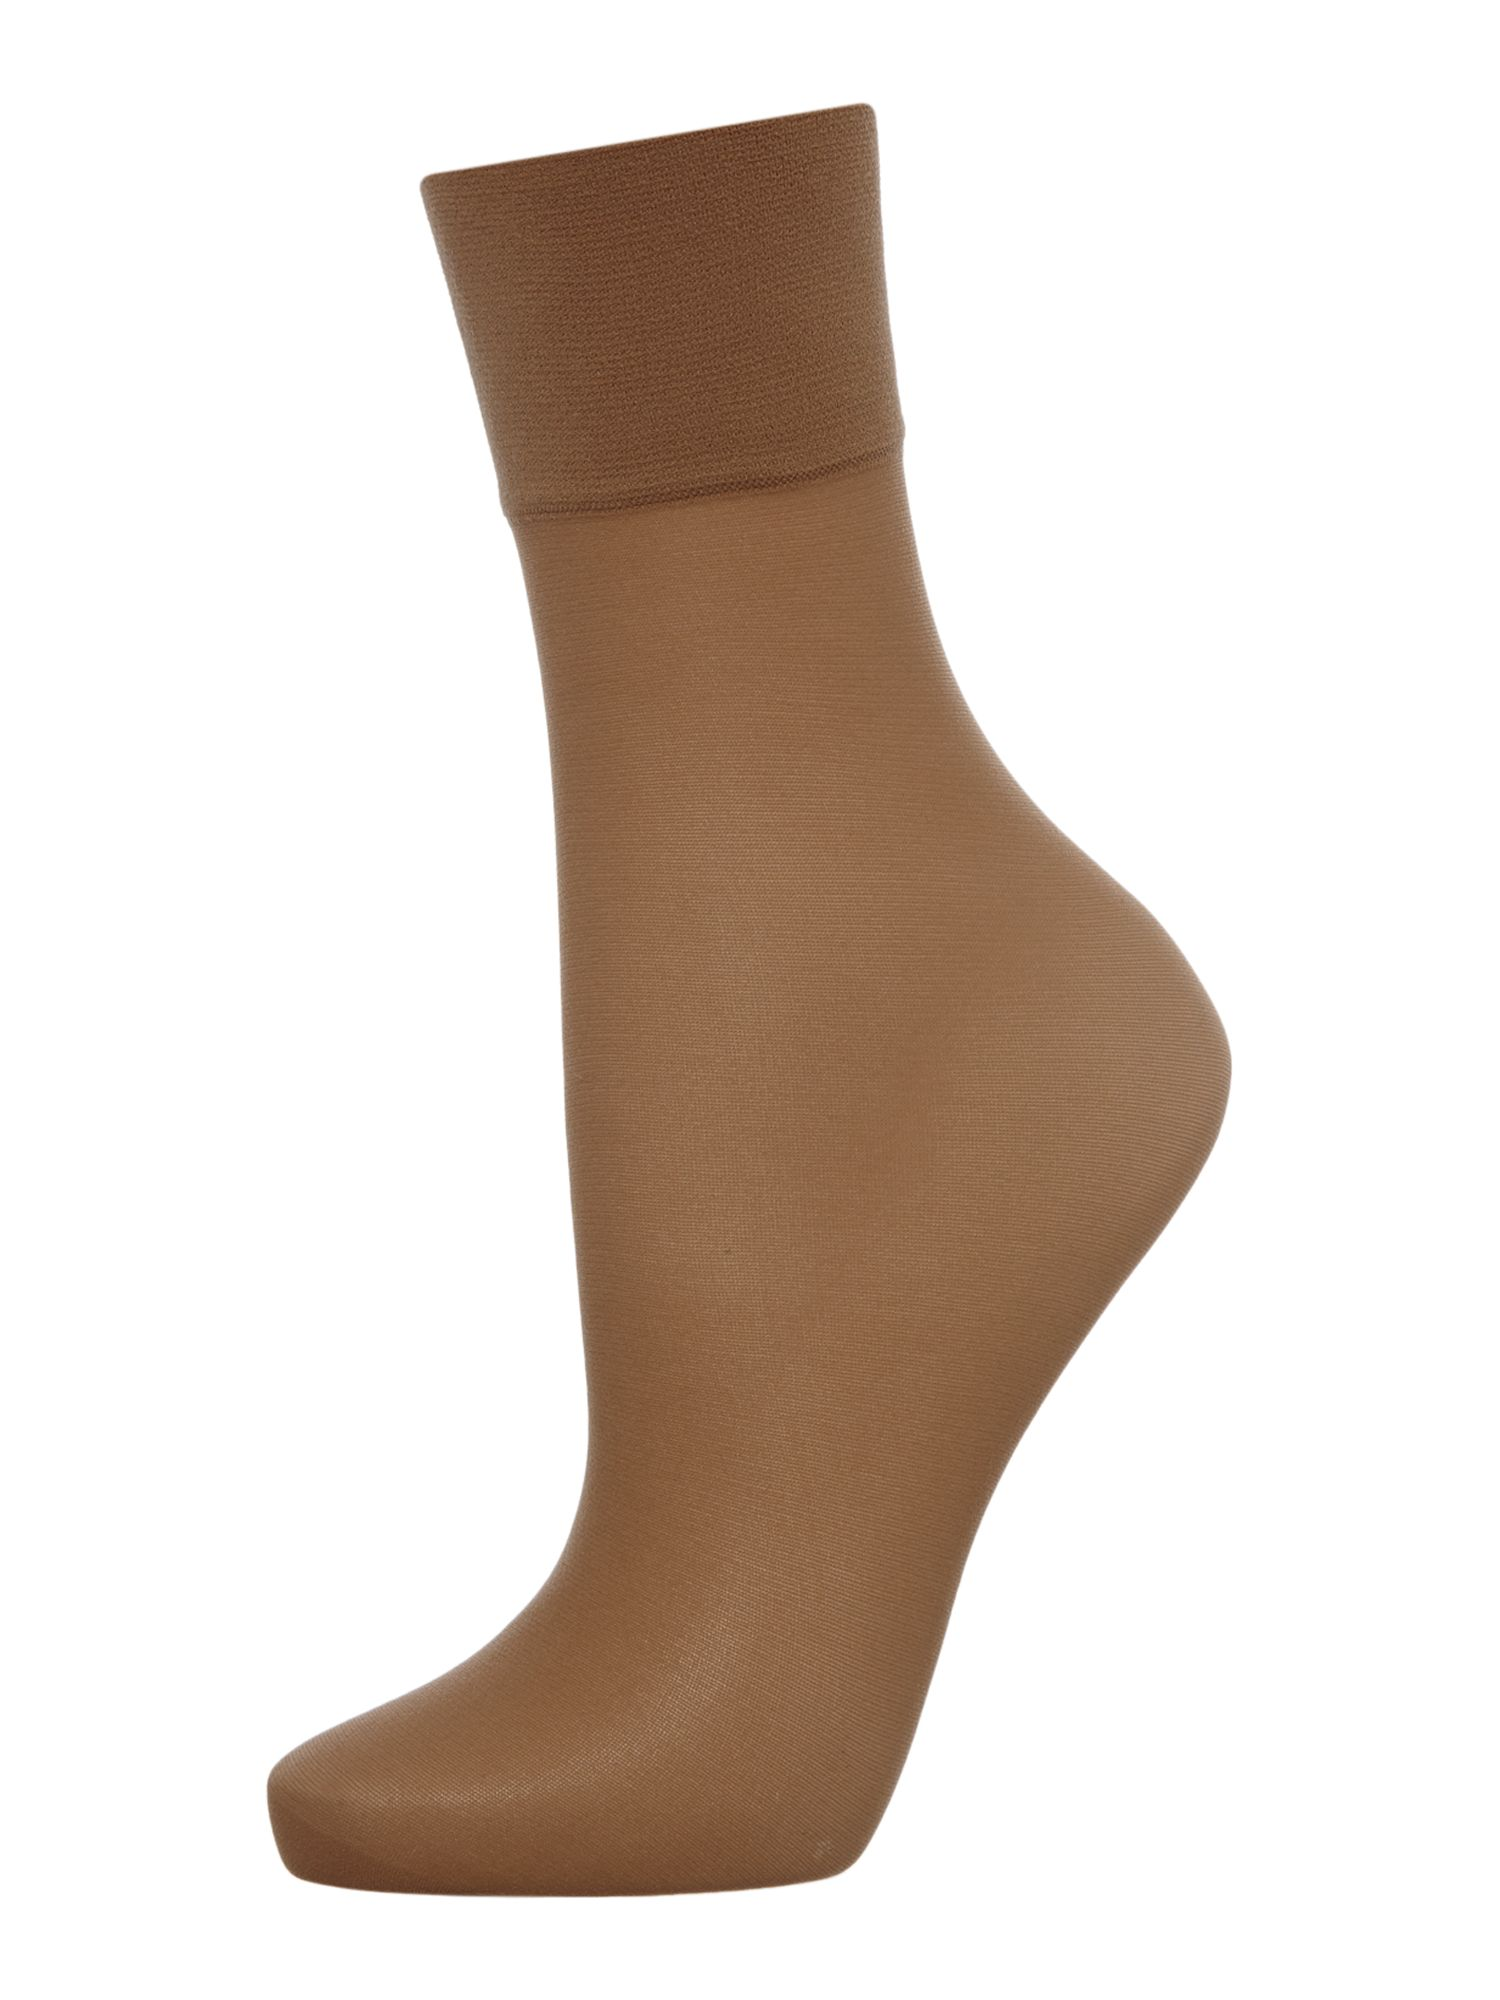 Charnos Charnos 2 Per Packet Sheer Ankle Socks, Sherry